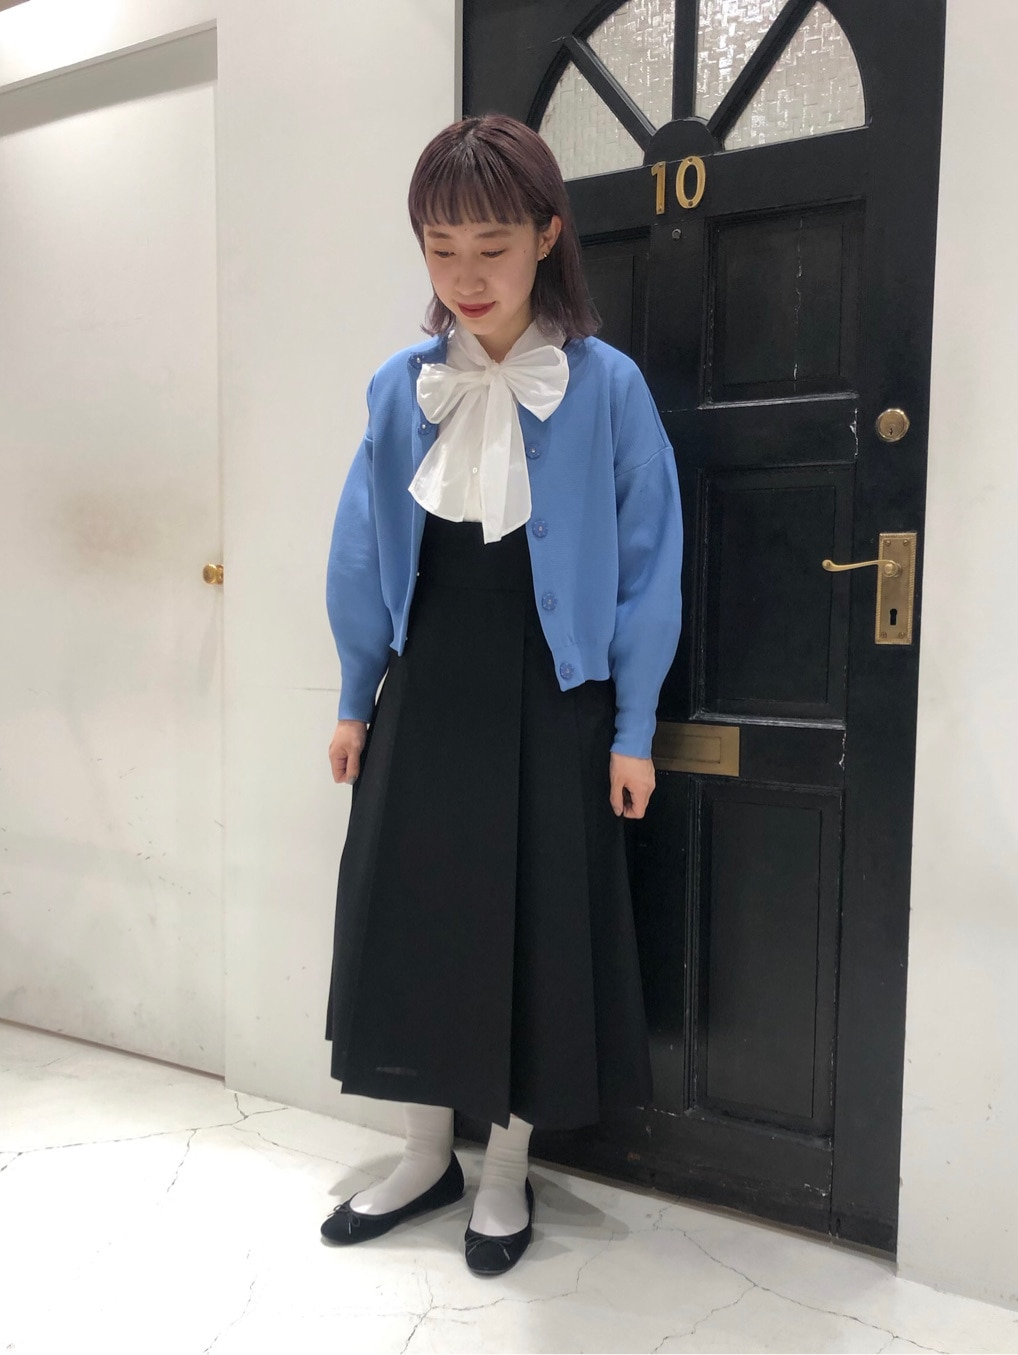 Dot and Stripes CHILD WOMAN ルクアイーレ 身長:157cm 2020.11.26